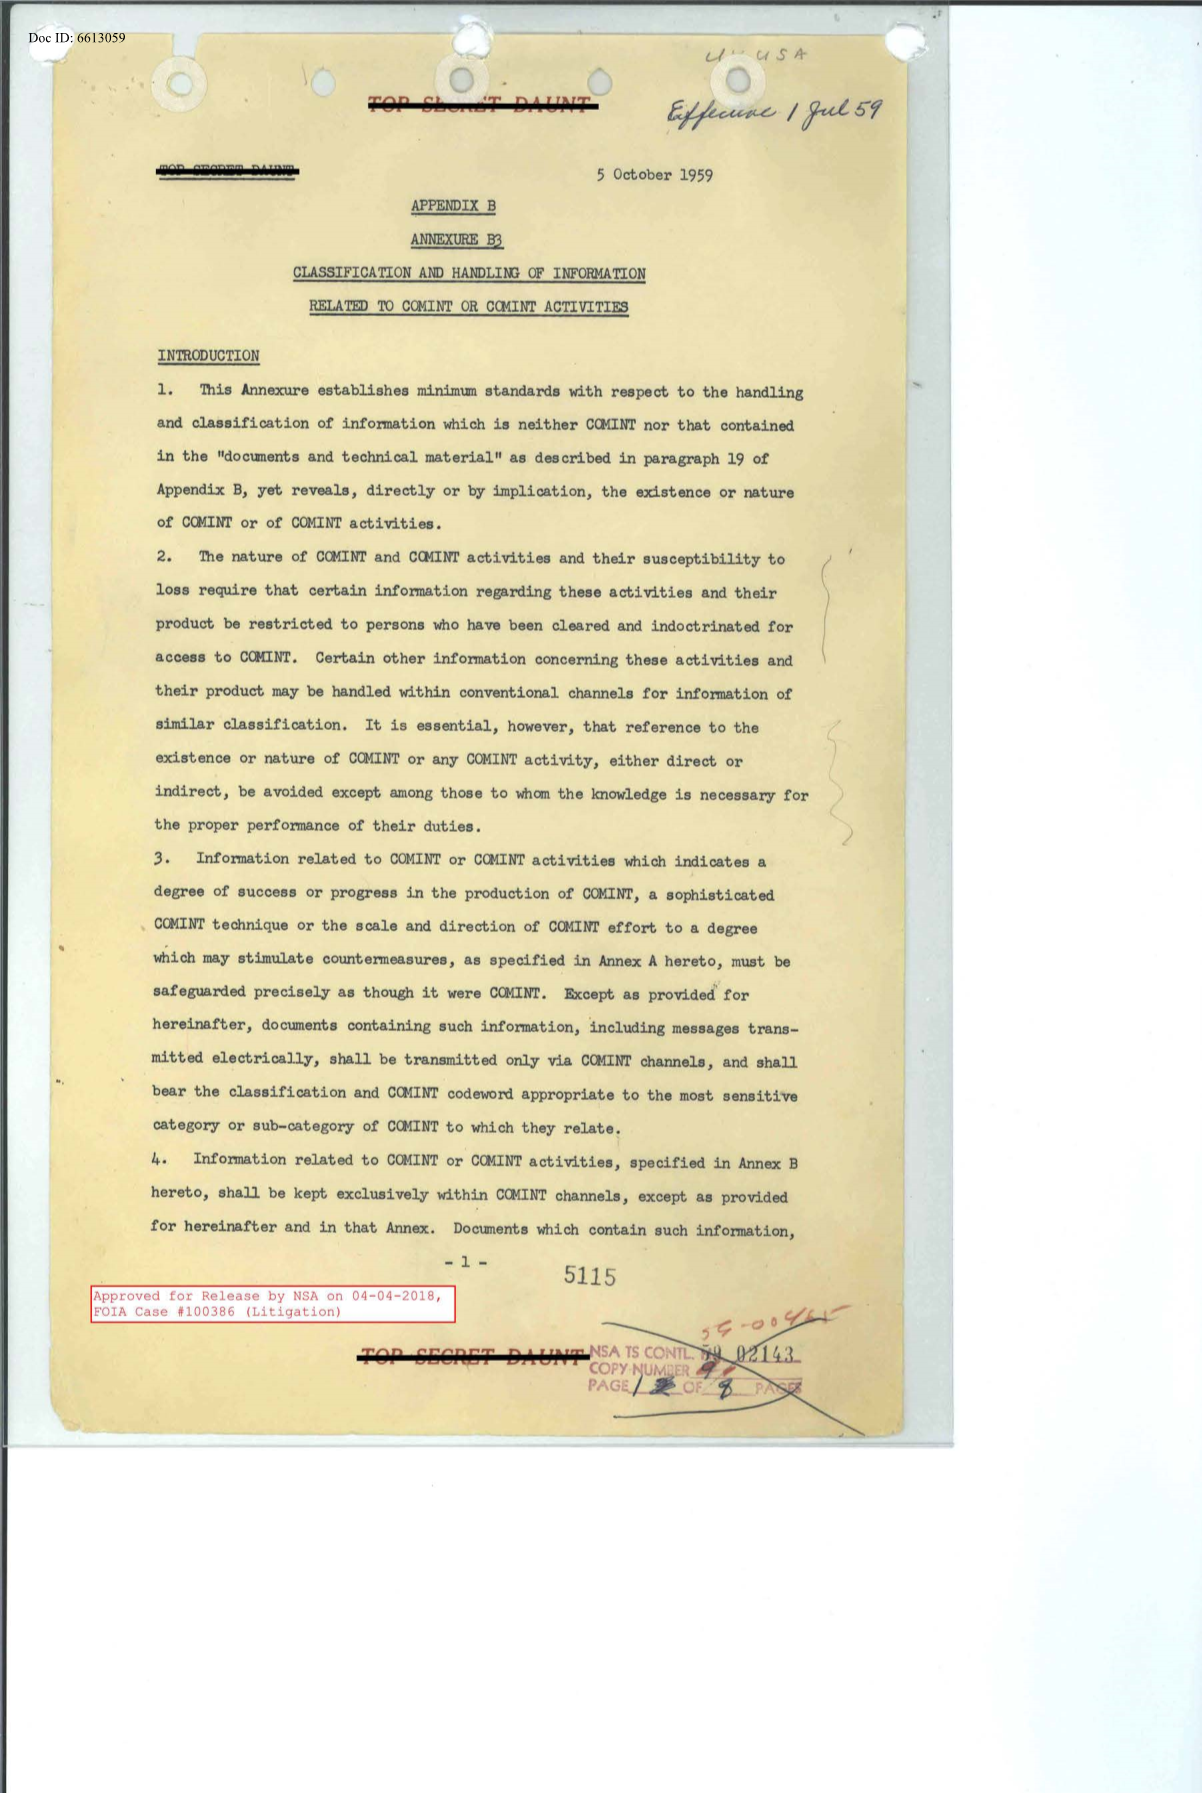 CLASSIFICATION_AND_HANDLING_OF_INFORMATION_RELATED_TO_COMINT_OR_COMINT_ACTIVITIES_APPENDIX_B_ANNEXURE_B3_5_OCTOBER_1959.PDF